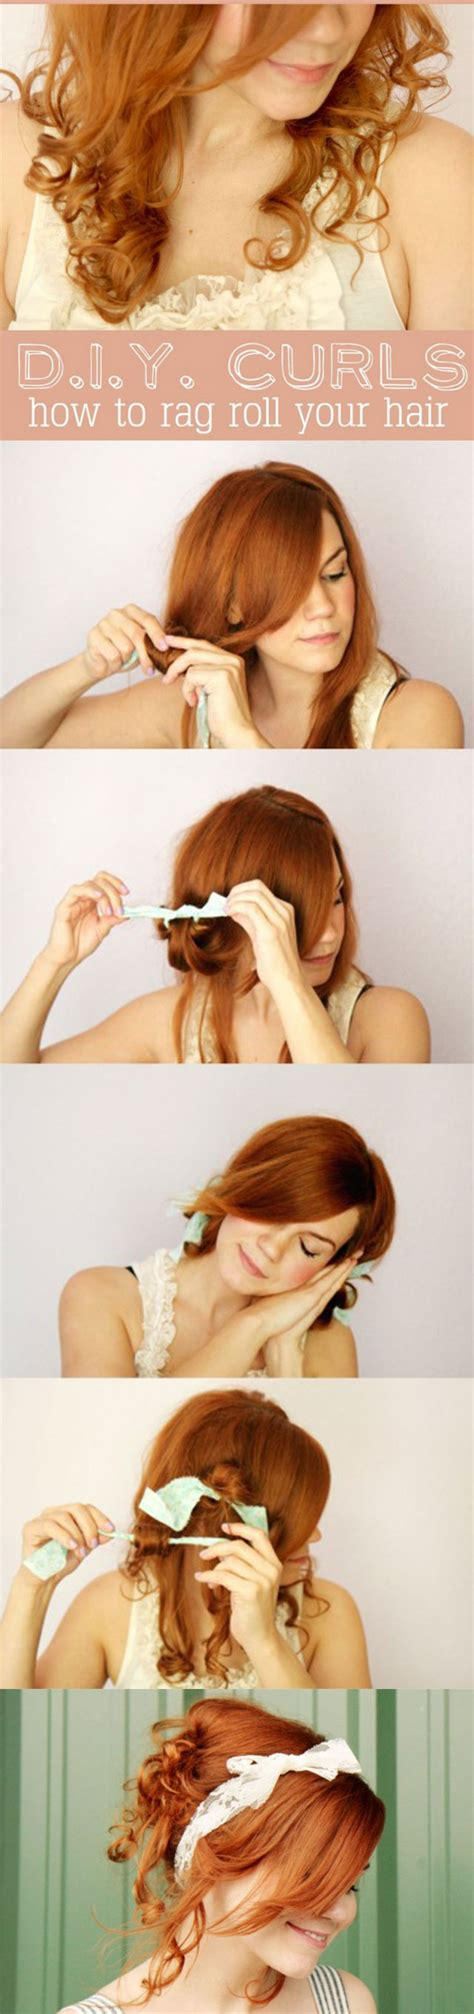 diy easy hairstyles step by step 9 pretty diy hairstyles with step by step tutorials